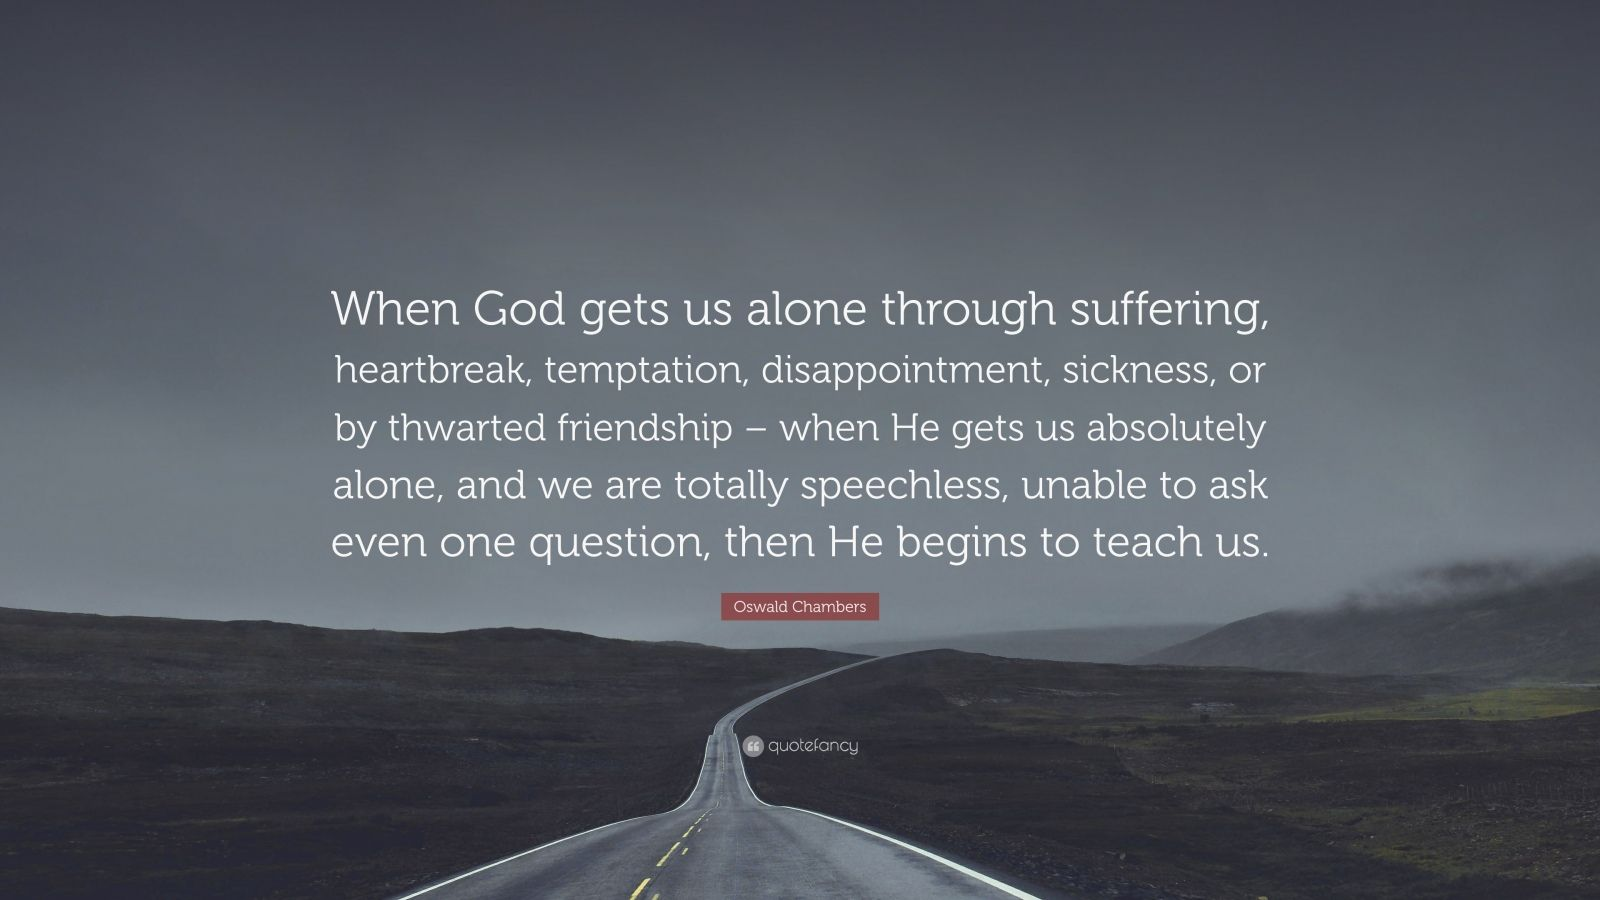 """Oswald Chambers Quote: """"When God gets us alone through suffering, heartbreak, temptation, disappointment, sickness, or by thwarted friendship – when He gets us absolutely alone, and we are totally speechless, unable to ask even one question, then He begins to teach us."""""""